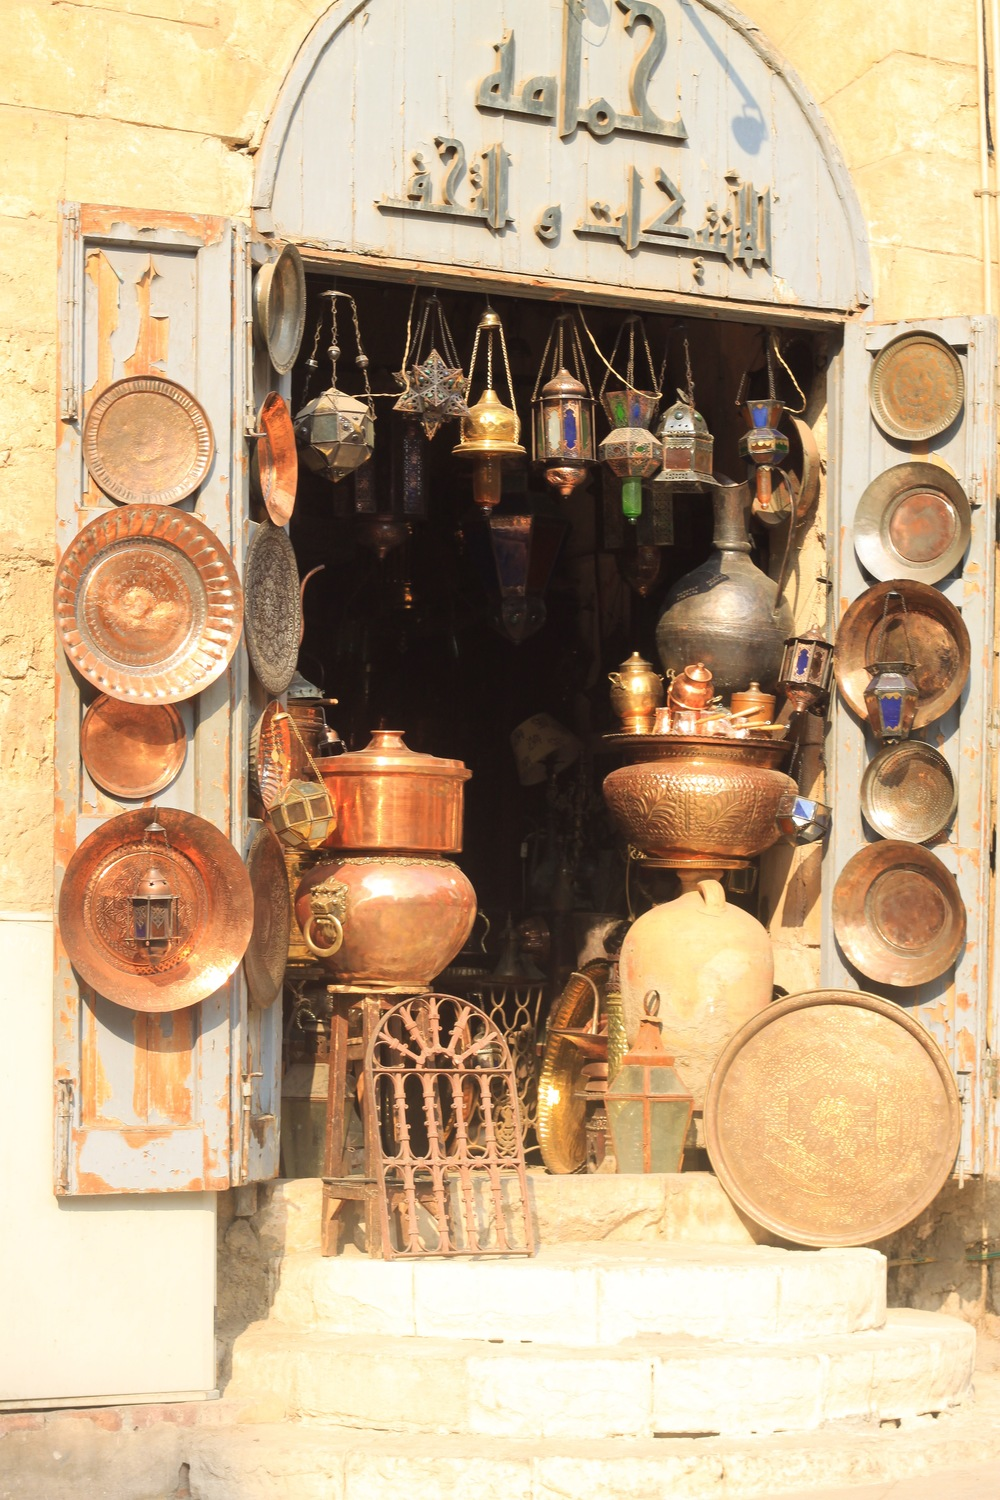 Shop in Khan el-Khalili